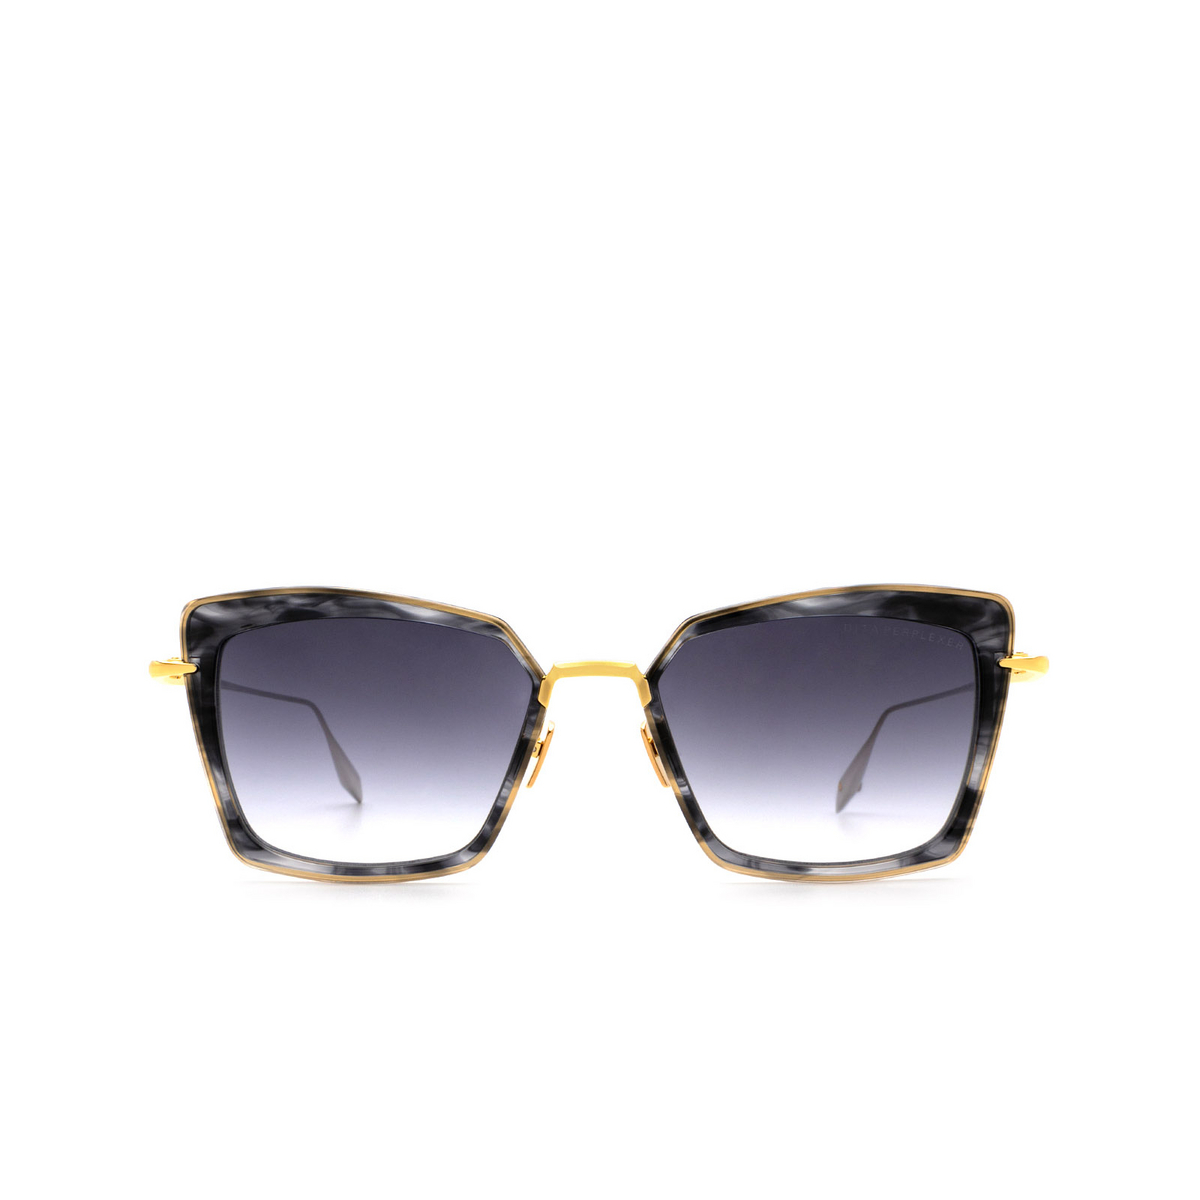 Dita® Butterfly Sunglasses: Perplexer DTS405-A-01 color Black Gold Blk-gld.